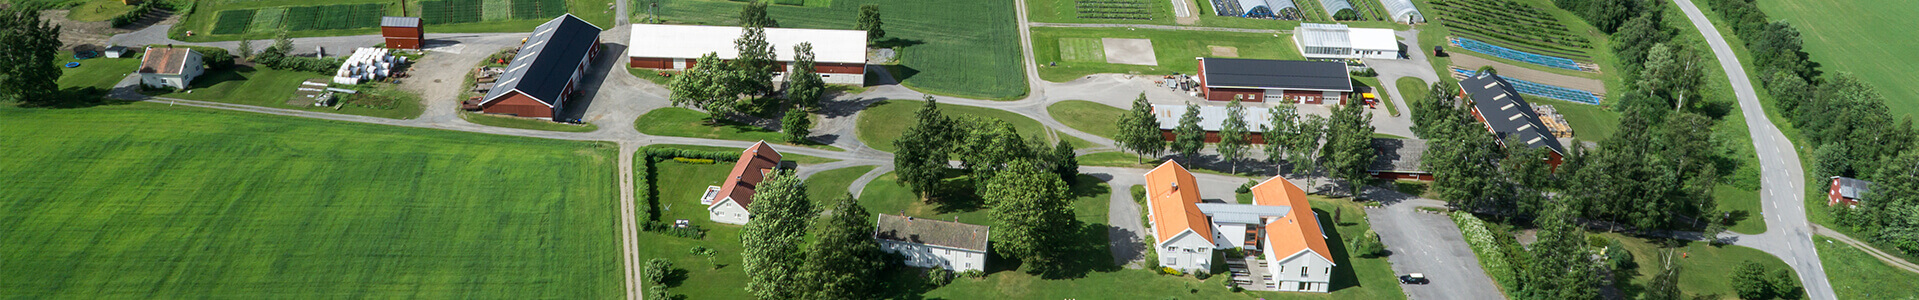 The picture of facilities shows the farm from above